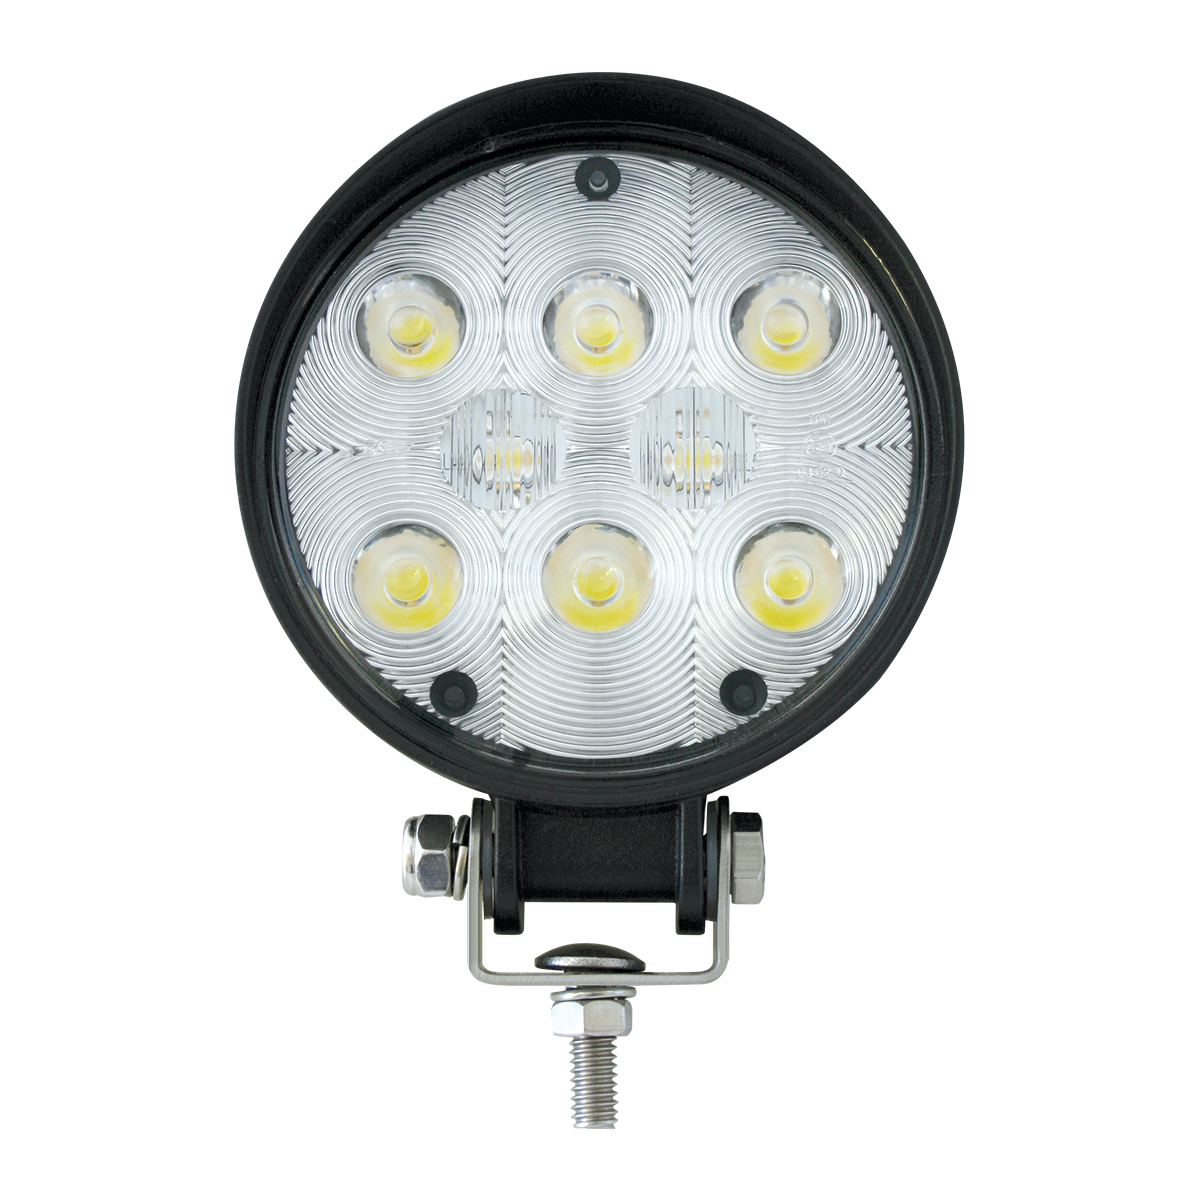 76350 Large High Power LED Work Light